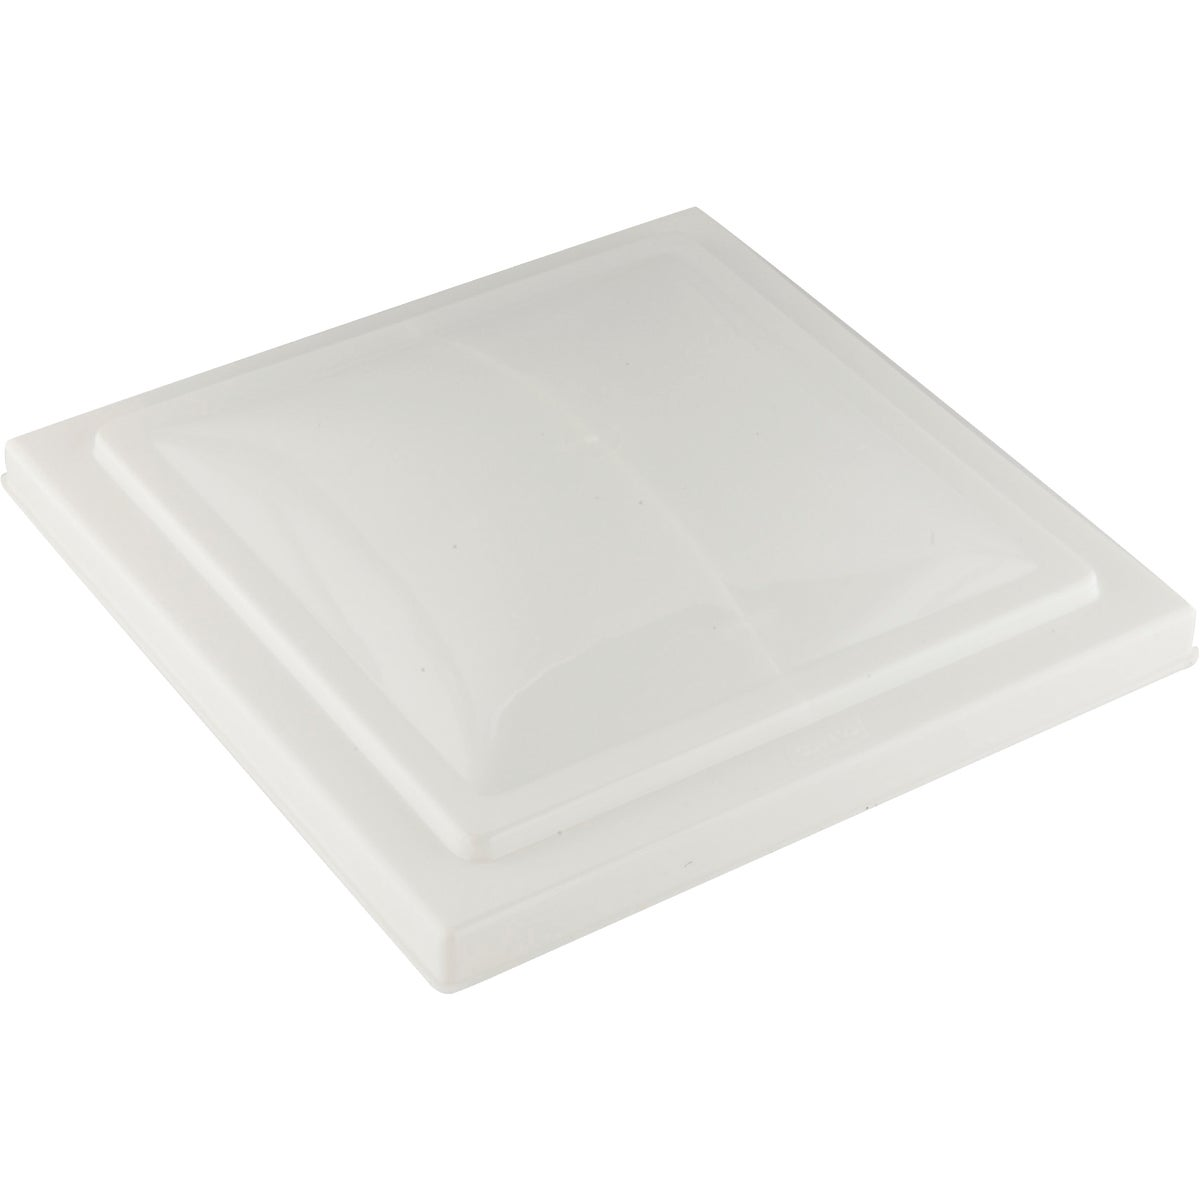 REPLACEMENT VENT LID - 40155 by Camco Mfg.